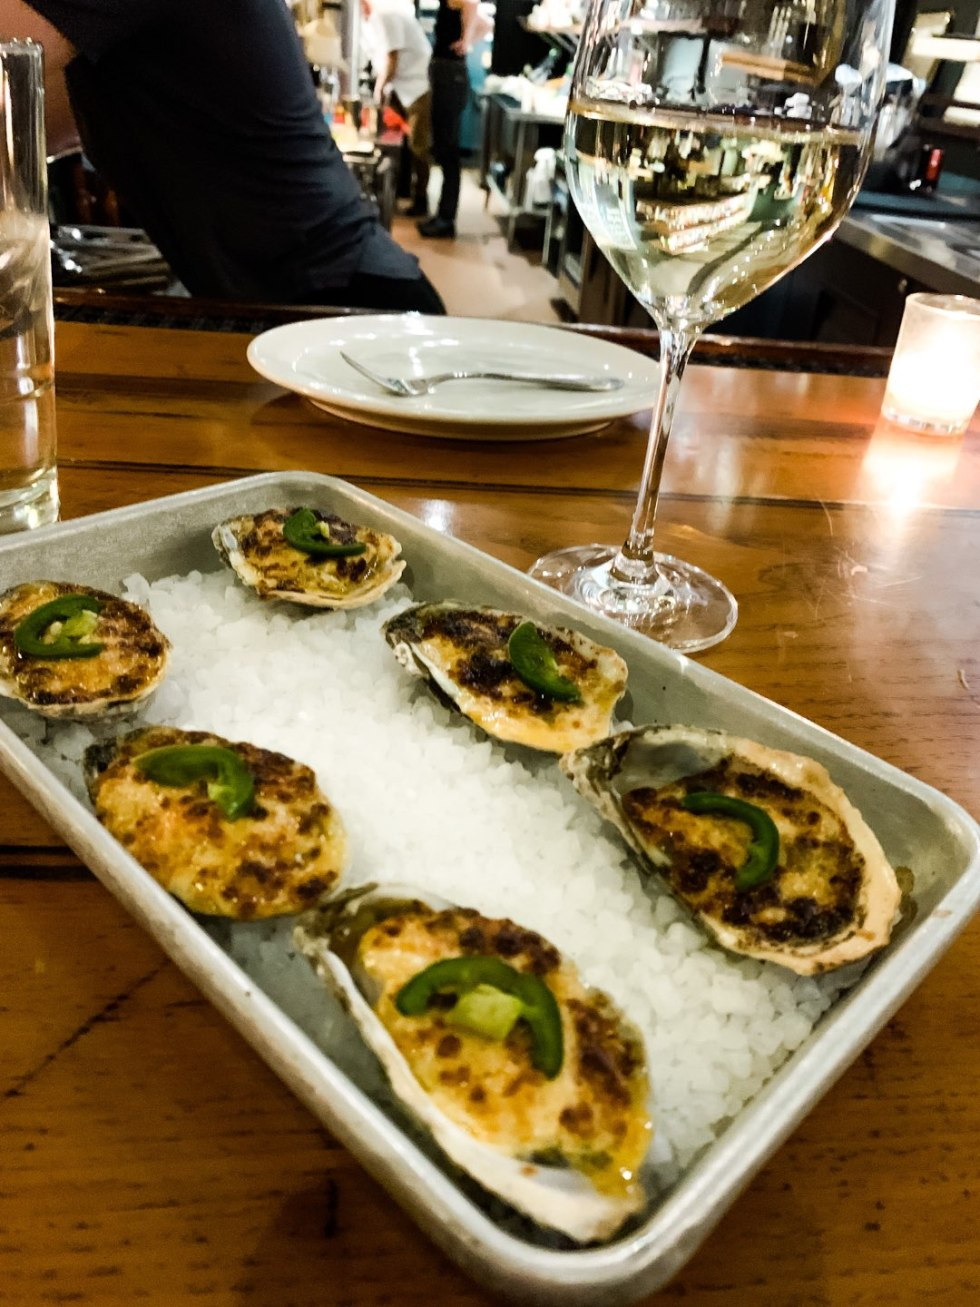 Top 5 Raleigh Restaurants with Curbside Delivery - I'm Fixin' To - @mbg0112 | Best Raleigh Restaurants by popular NC blog, I'm Fixin' To: image of a plate of oysters from St. Roch Fine Oysters + Bar.